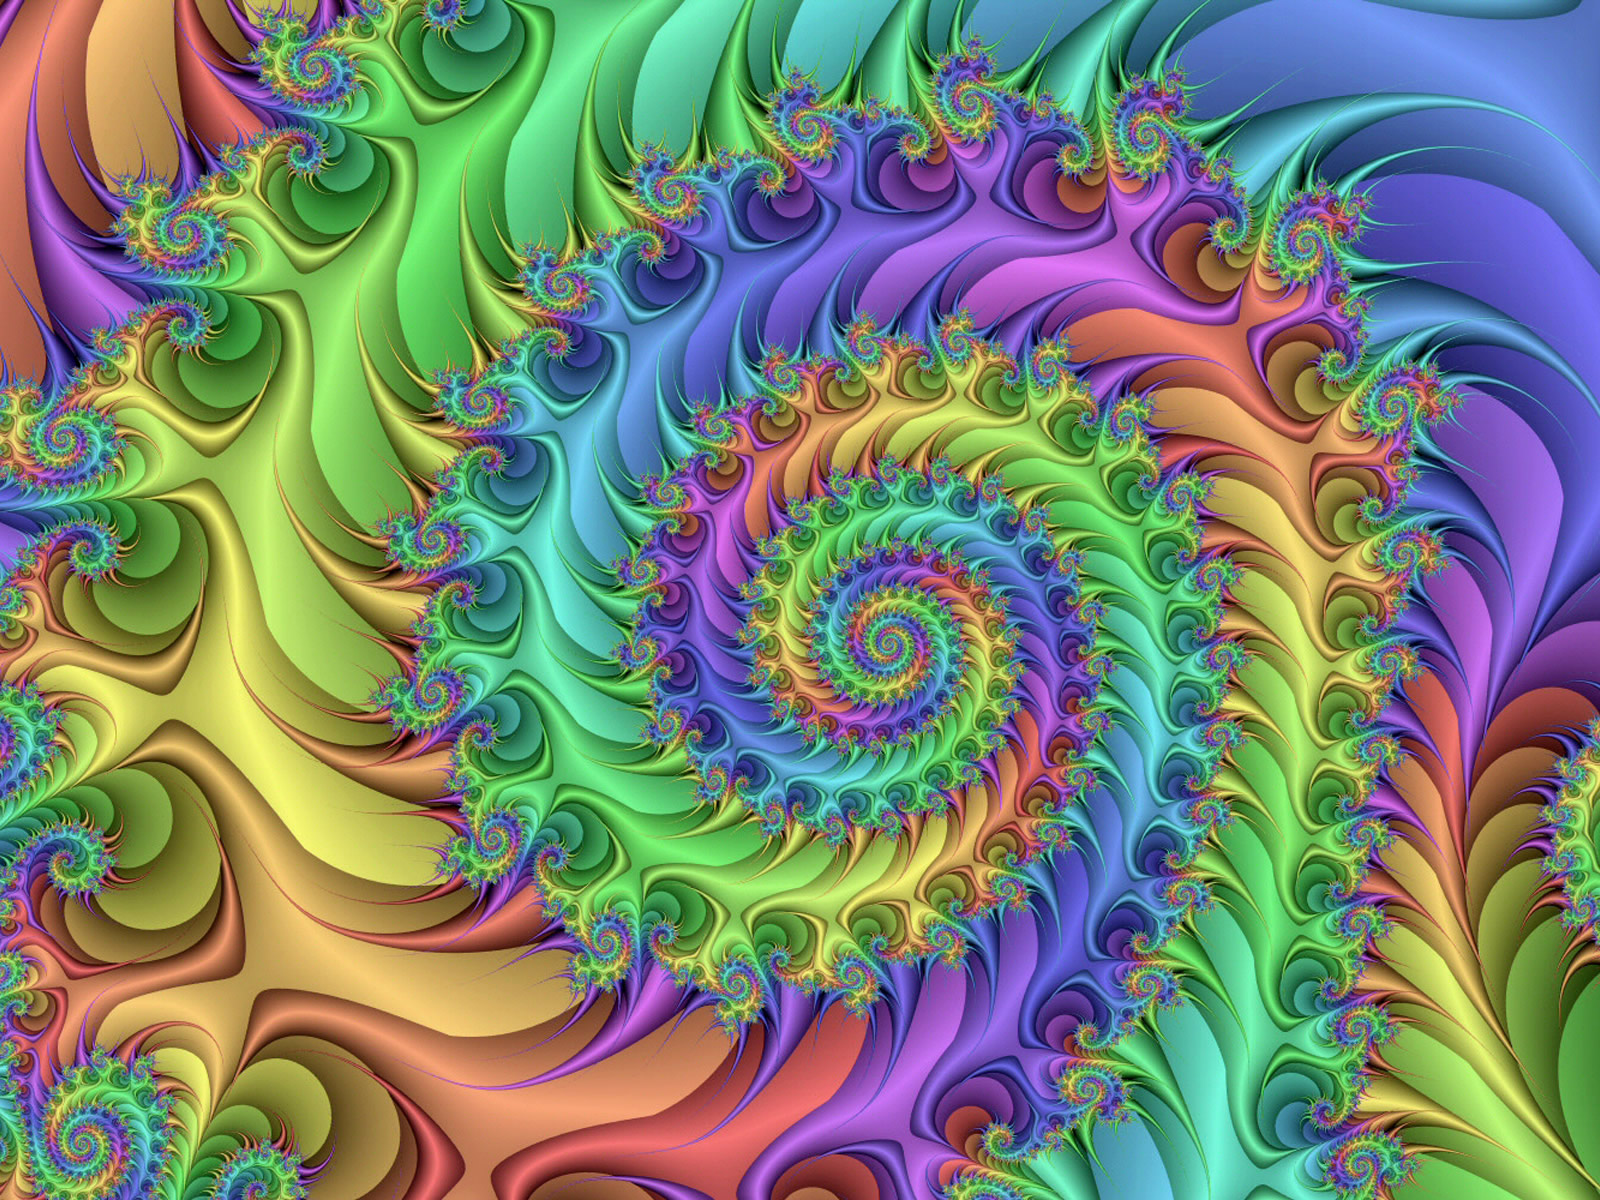 Mandala Madness: Cool Spiral Art - photo#9